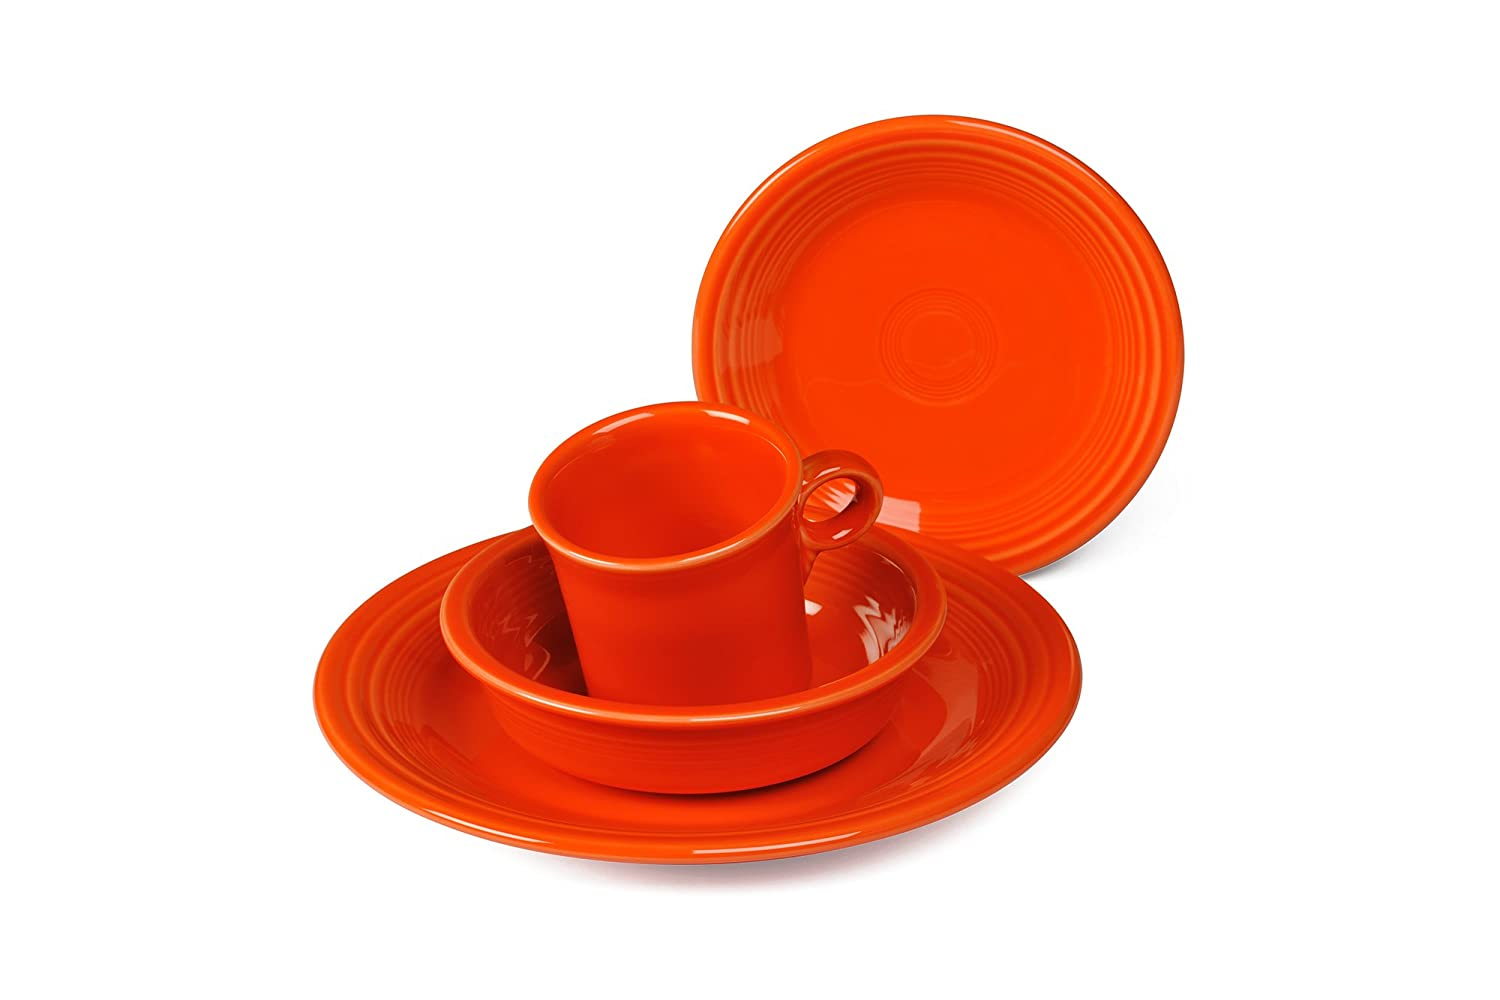 sc 1 st  Amazon.com & Amazon.com: Fiesta 4-Piece Place Setting Poppy: Kitchen \u0026 Dining